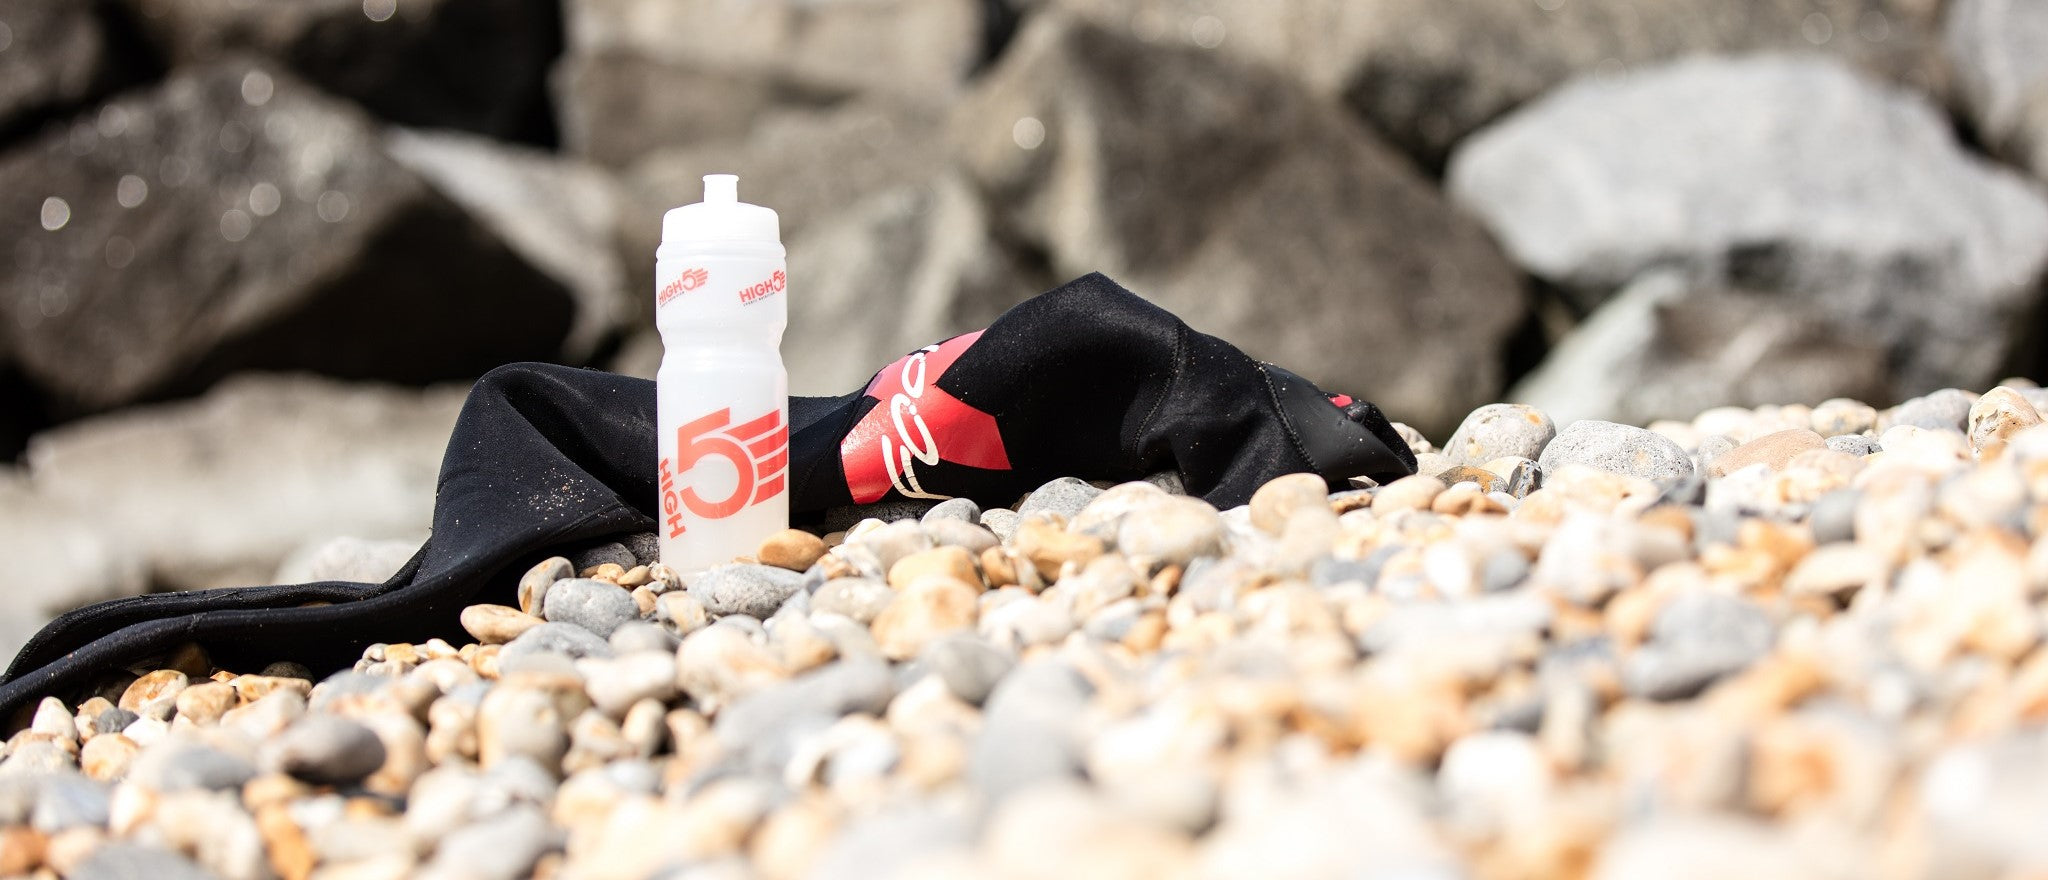 Wetsuit and HIGH5 bottle